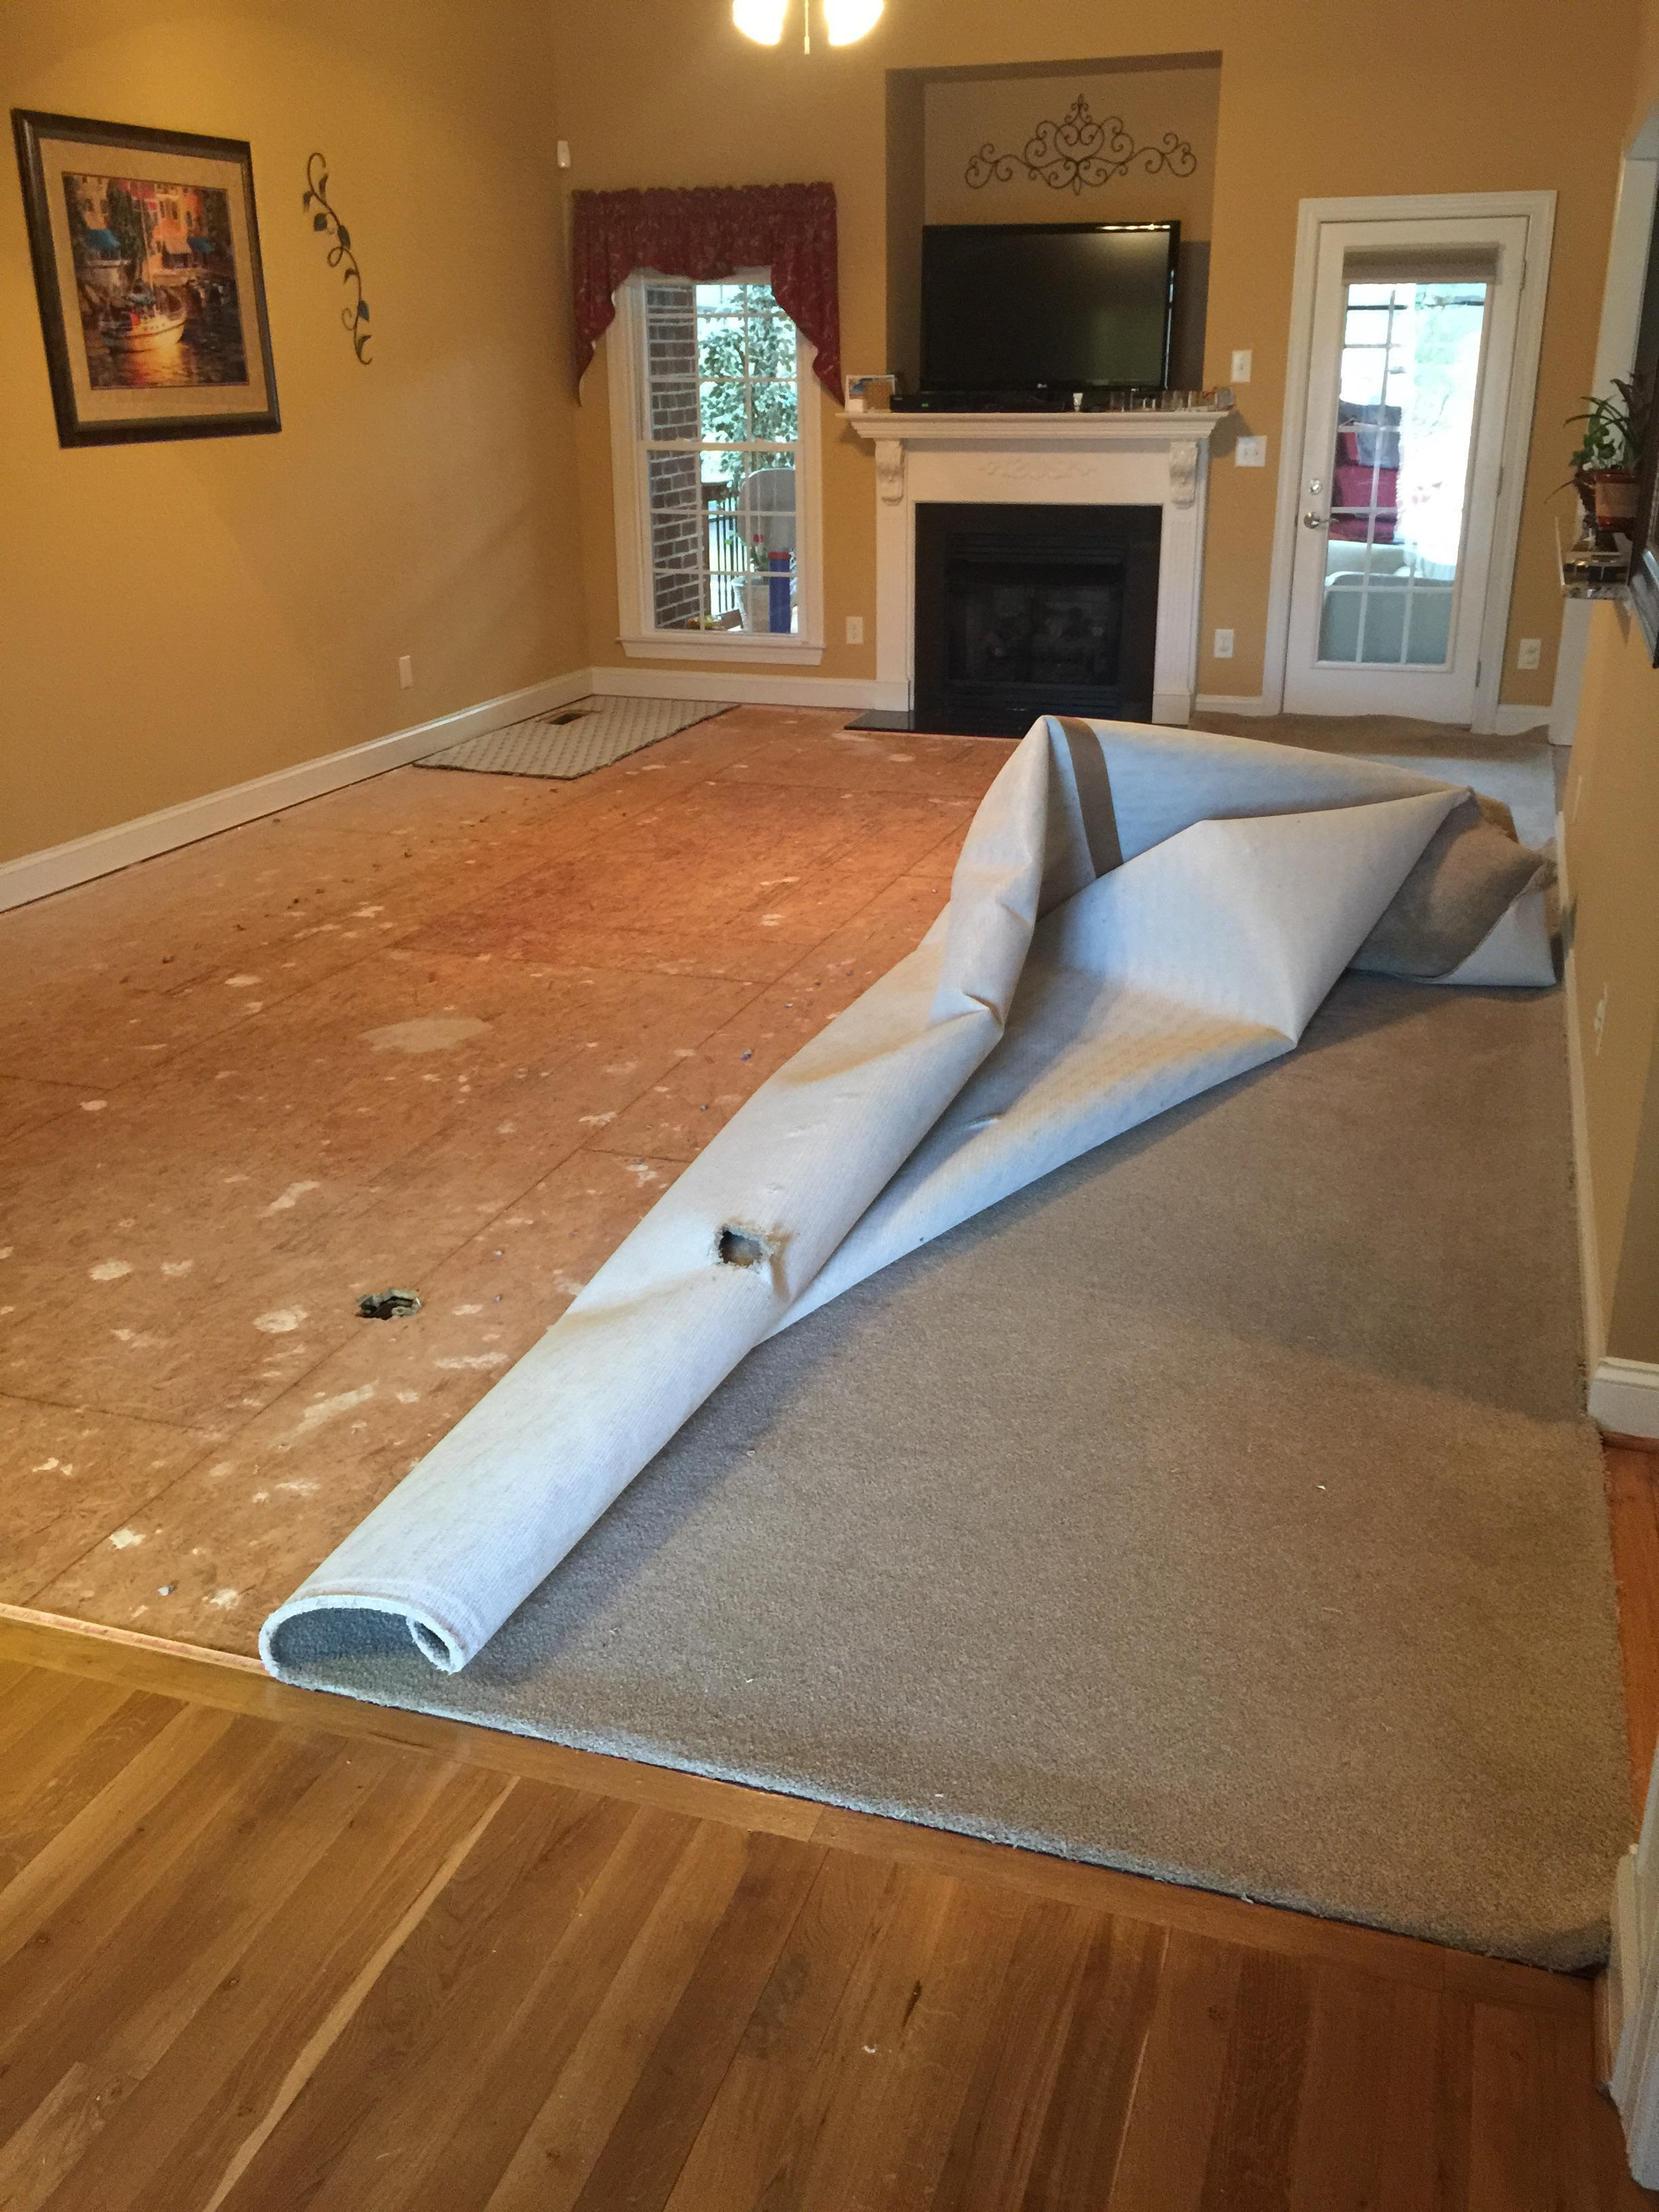 Benson floorcovering inc coupons near me in 8coupons for Floor covering near me